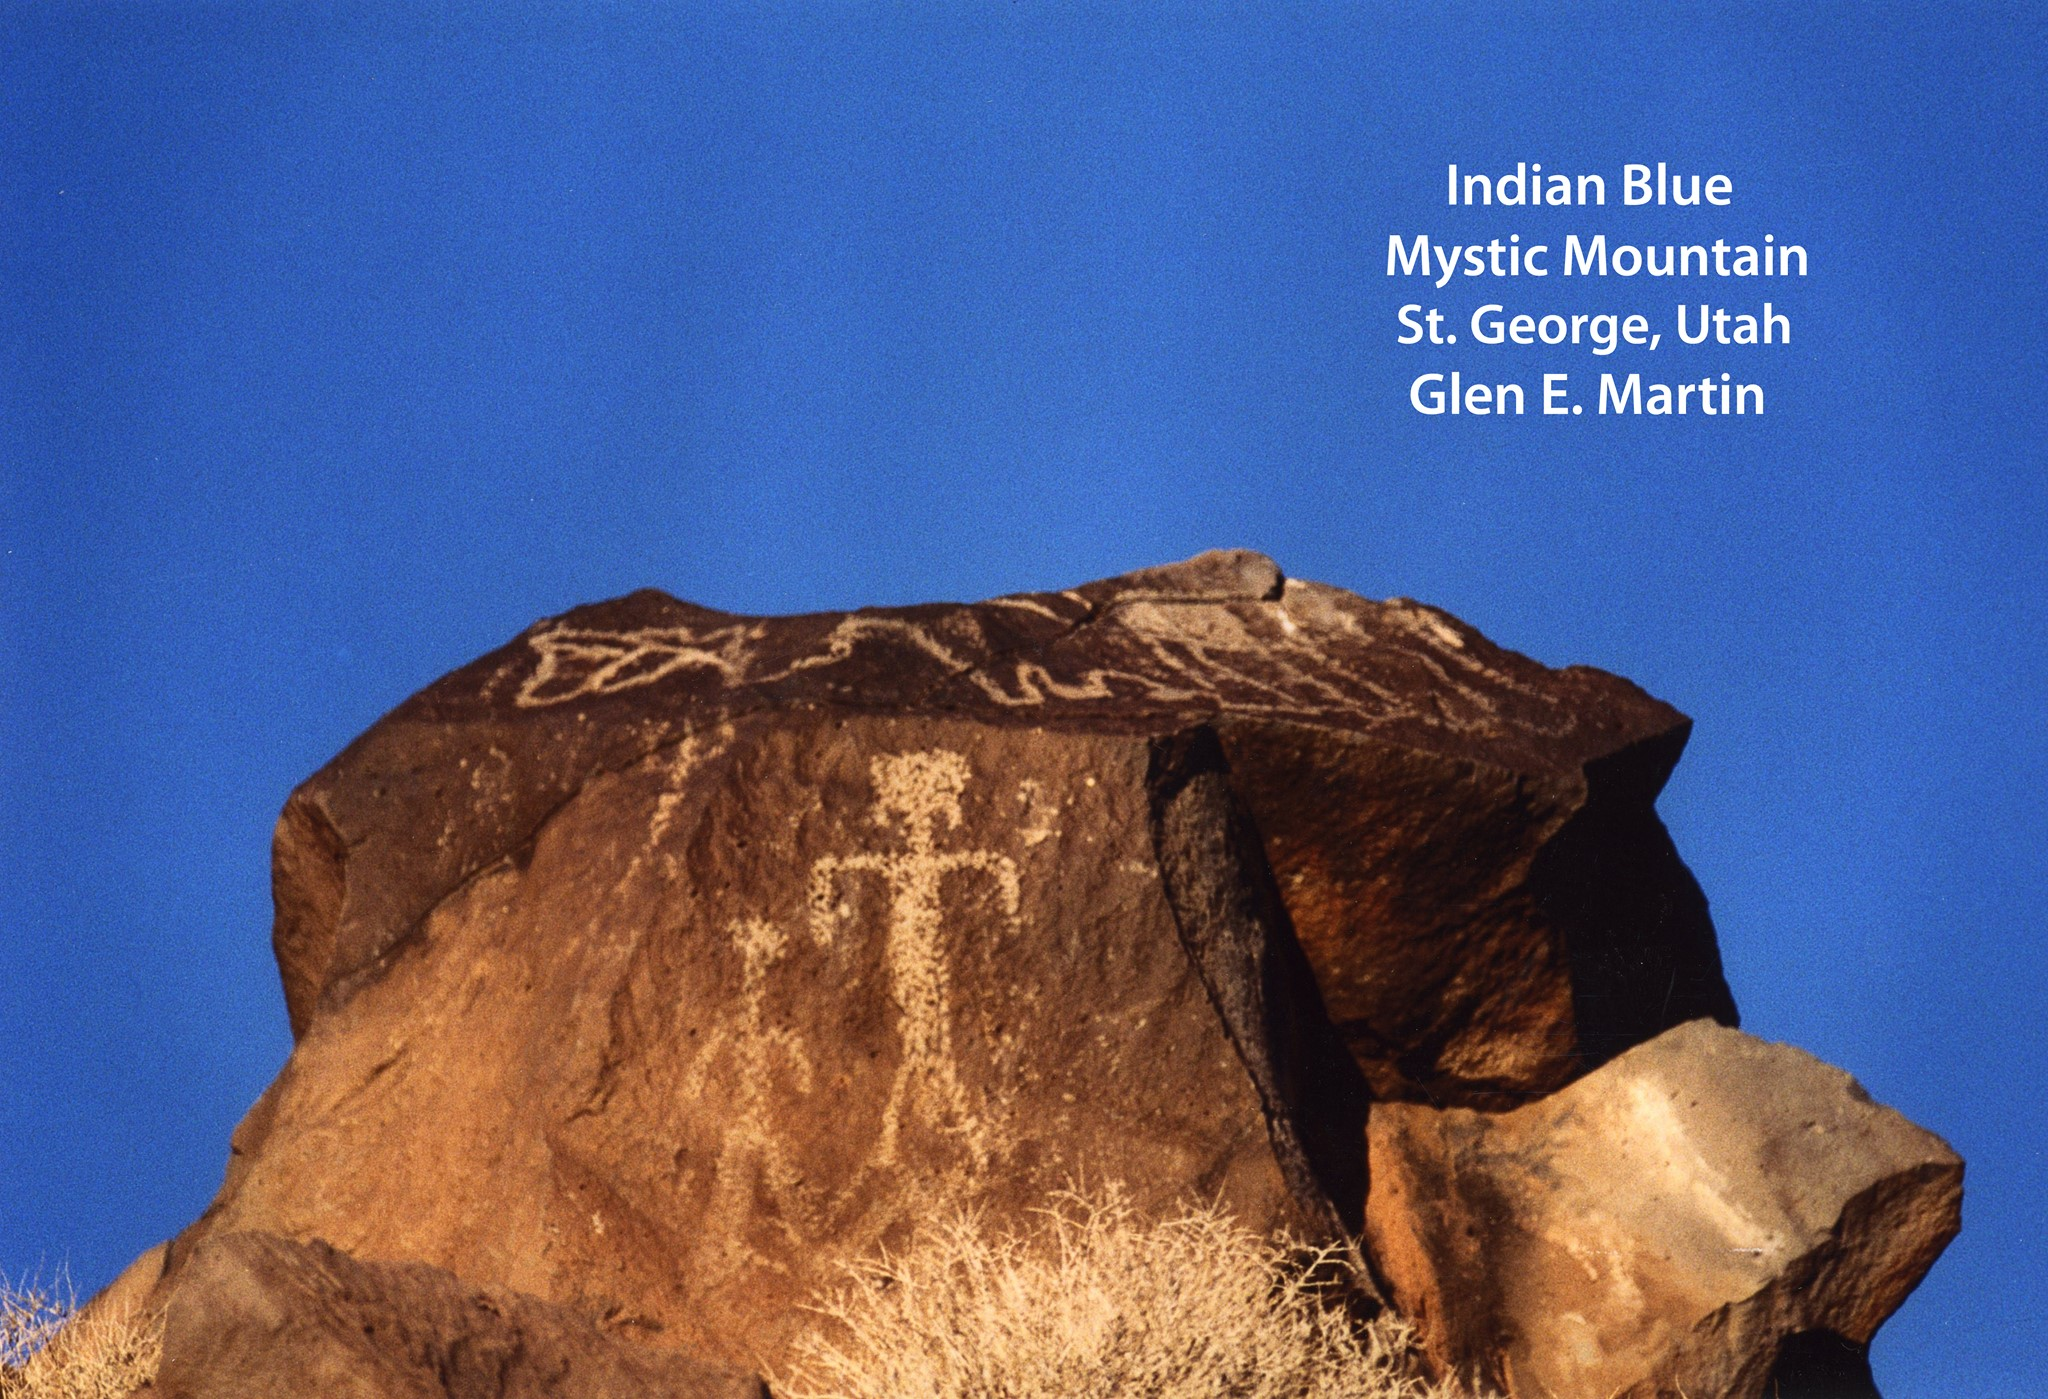 Indian Blue overlooking Mystic Mountain